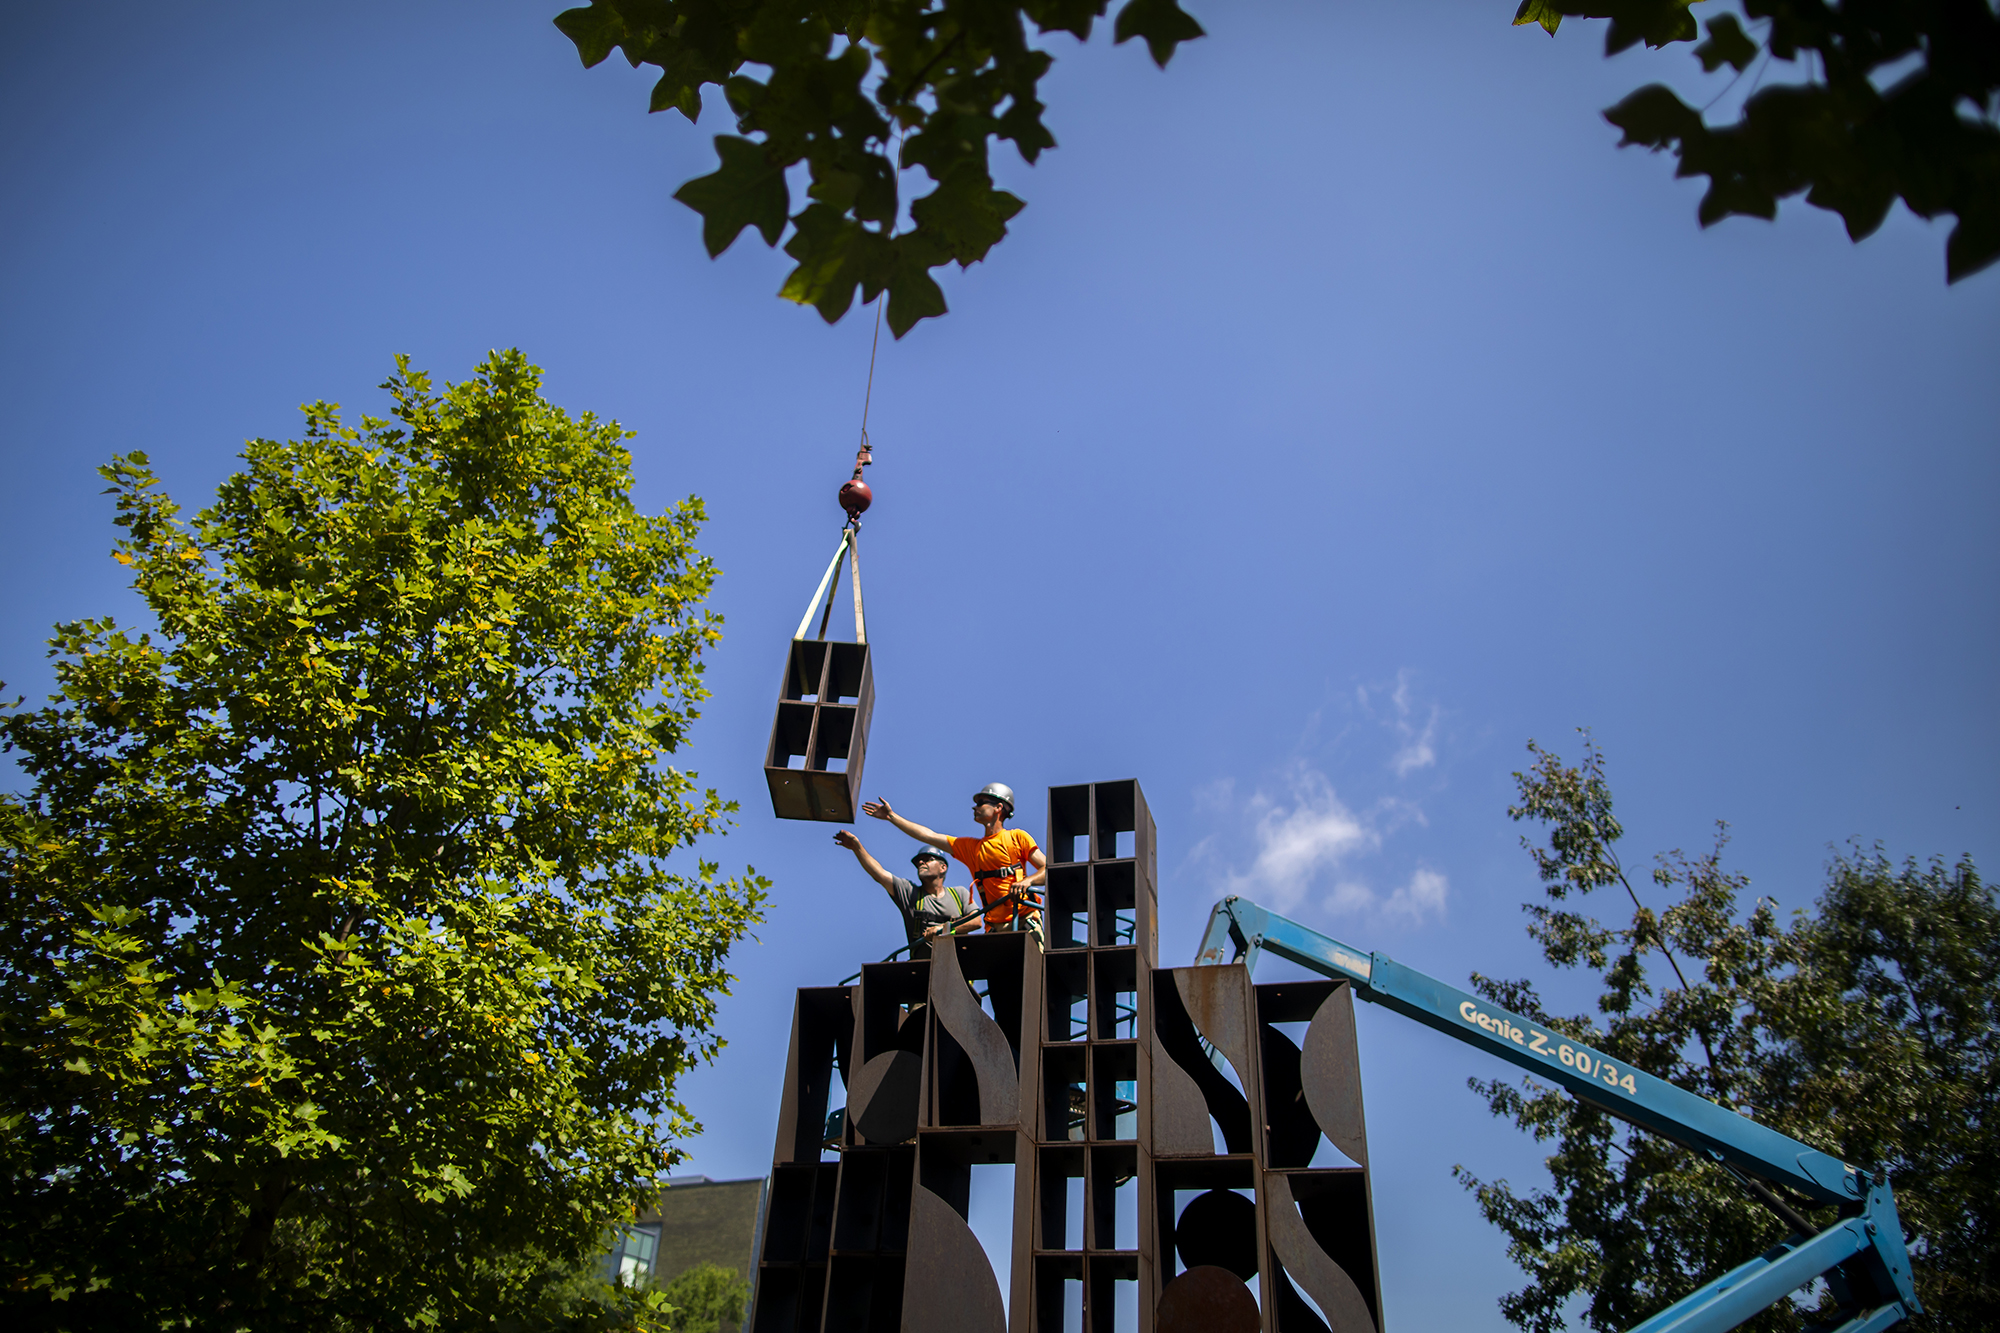 Atmosphere and Environment at Shoemaker Green hoisted by crane